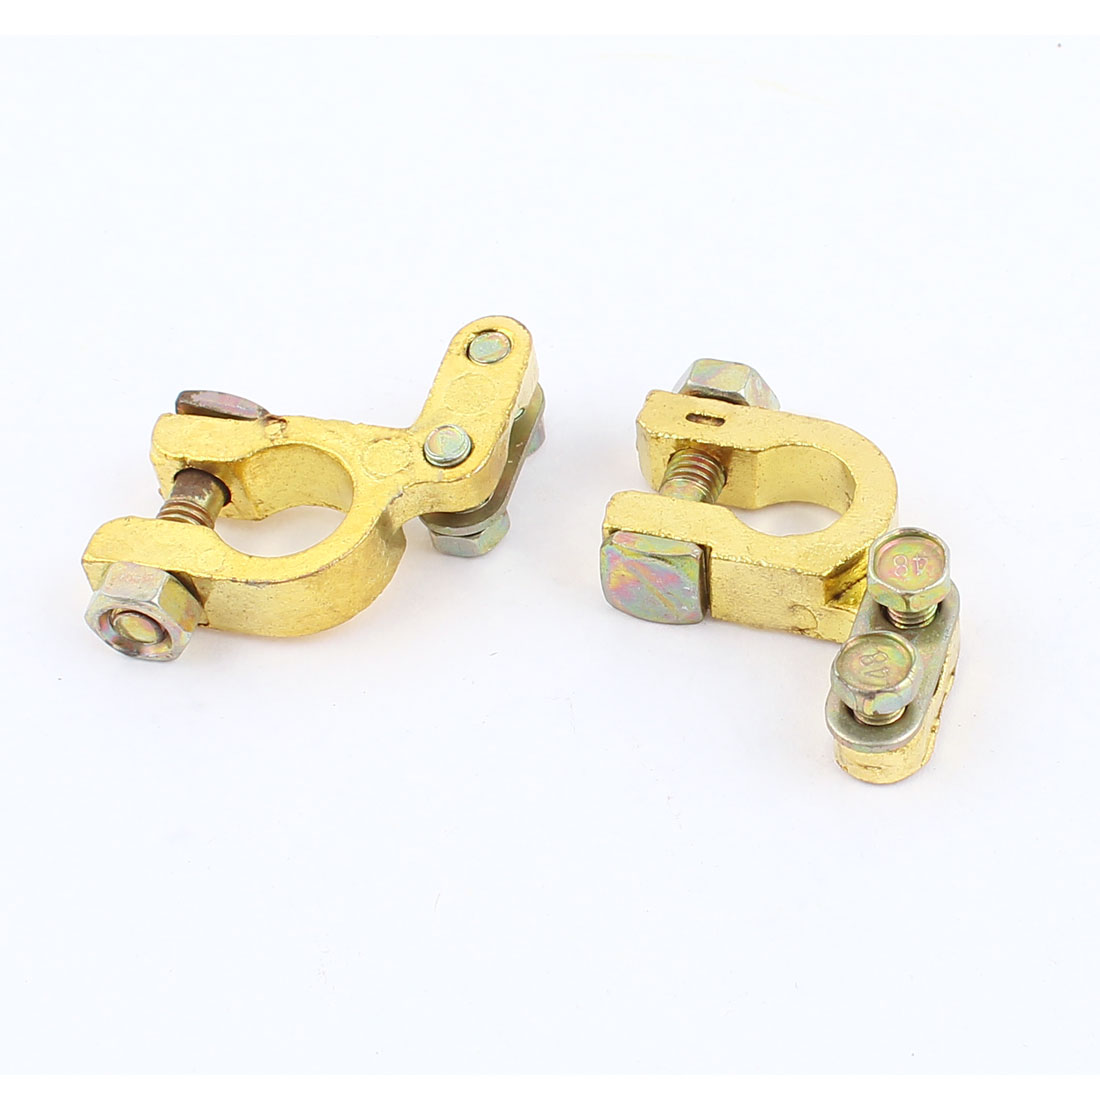 2PCS Car Vehicle 6V 12V Angle Type Battery Terminals Positive Negative Clamps